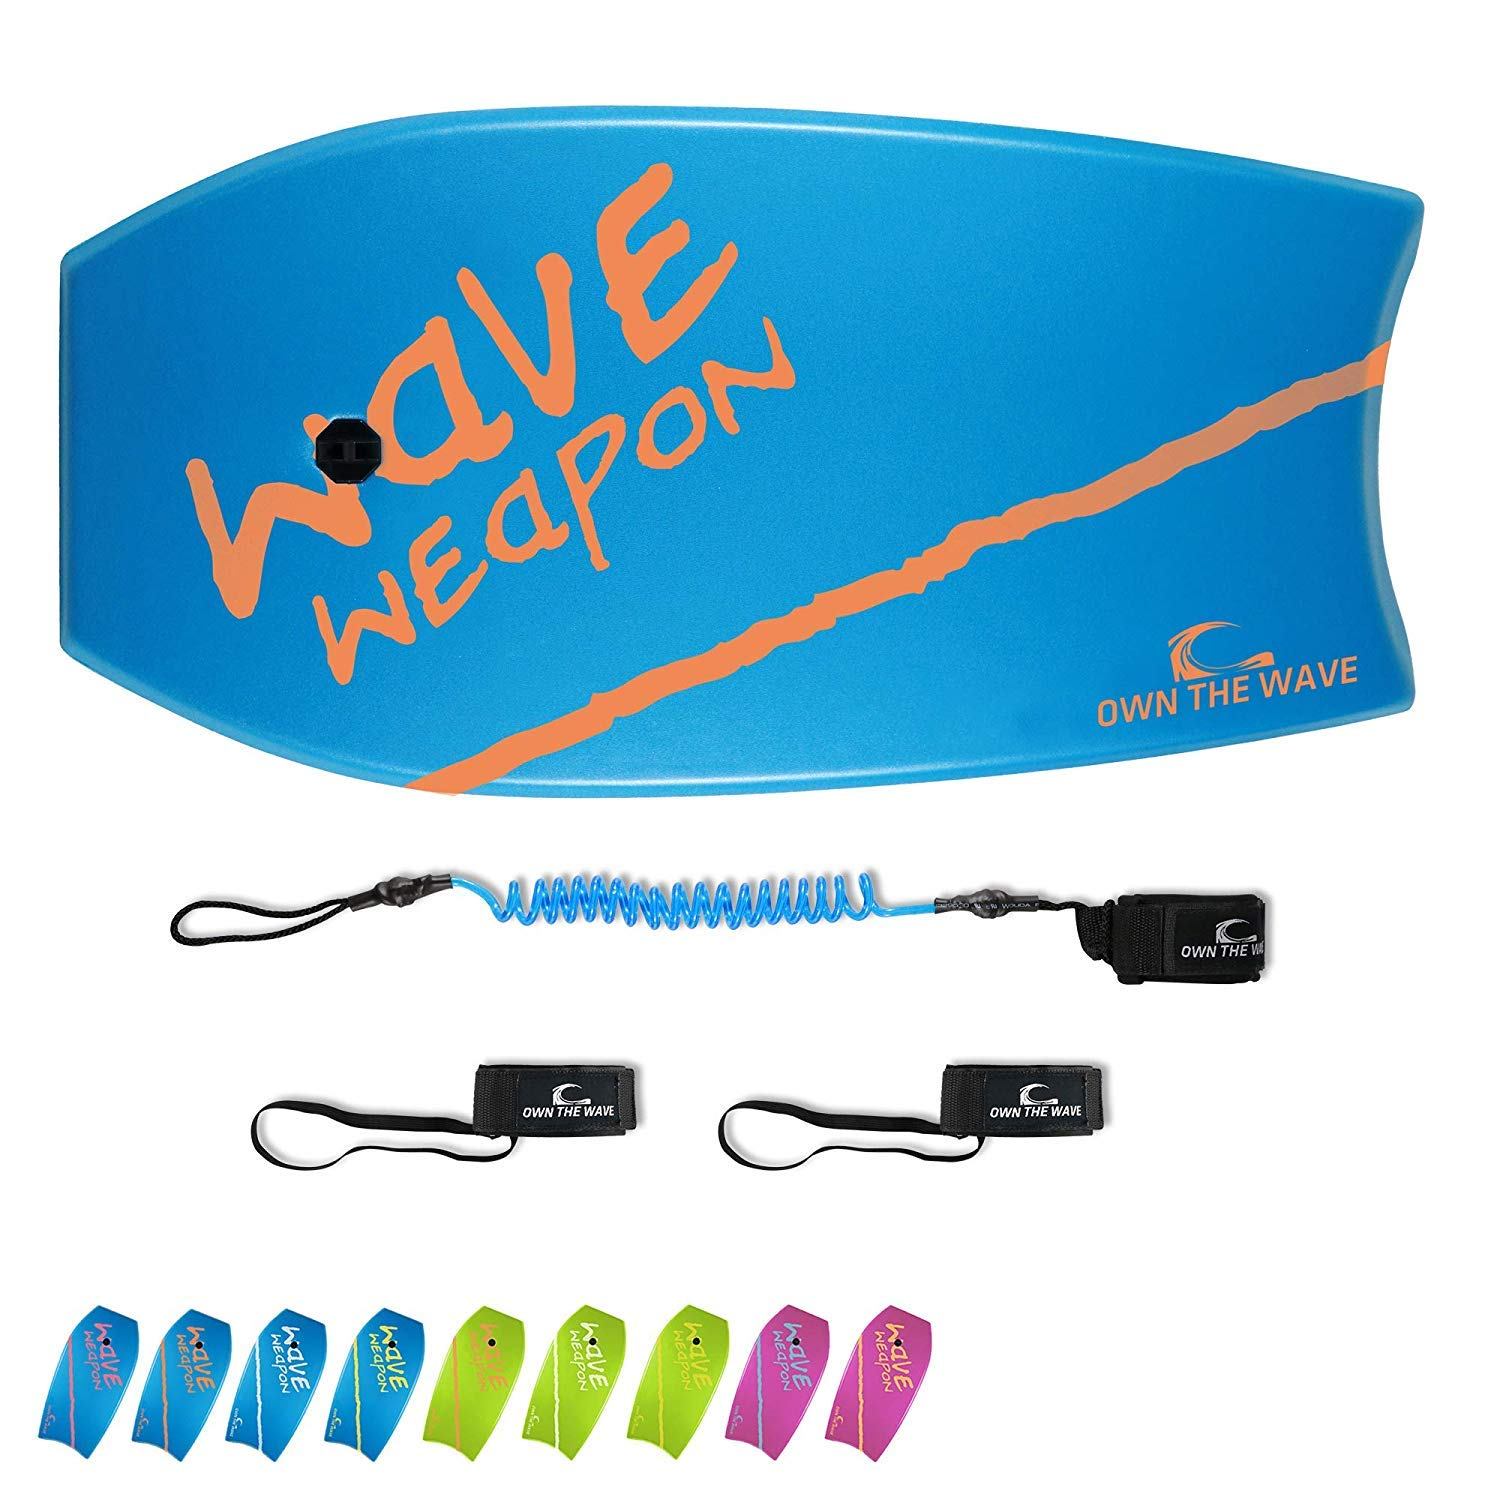 Own the Wave 33'' Body Board for Kids and Adults - HDPE Slick Bottom & EPS Core - Lightweight Body-Board for Beach and Surfing - Comes with Coiled Arm Leash and Fin Leash (Blue & Orange)